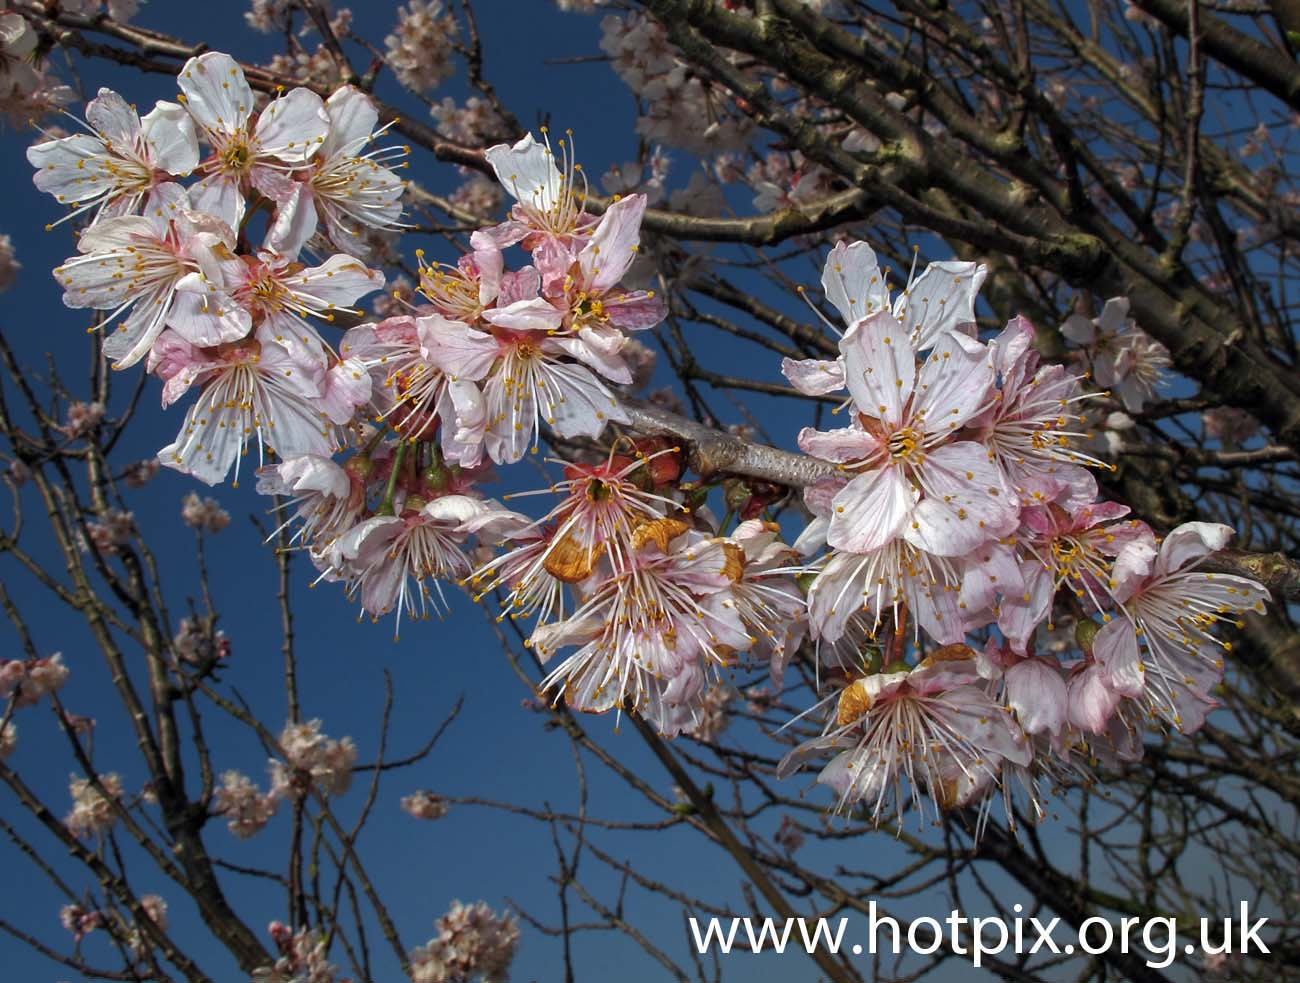 Spring,flower,cherry,blossom,bloom,new,life,tree,cheshire,england,uk,white,pink,petals,tonysmith,hotpix,tonysmiththat,tonysmiththathousing